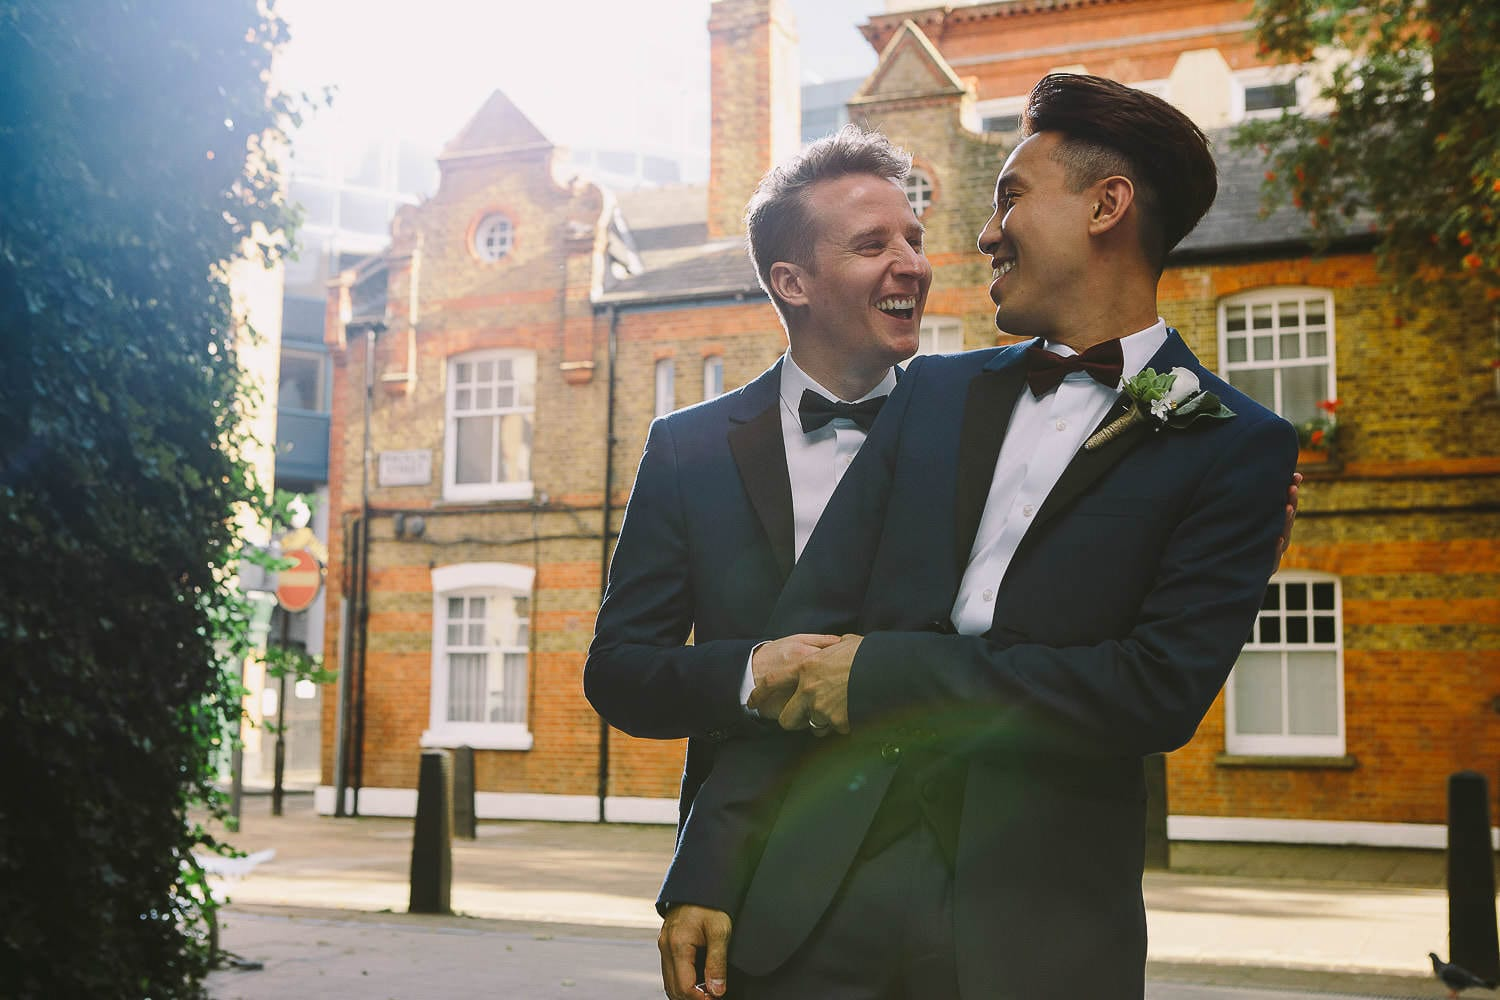 A portrait of the grooms in London